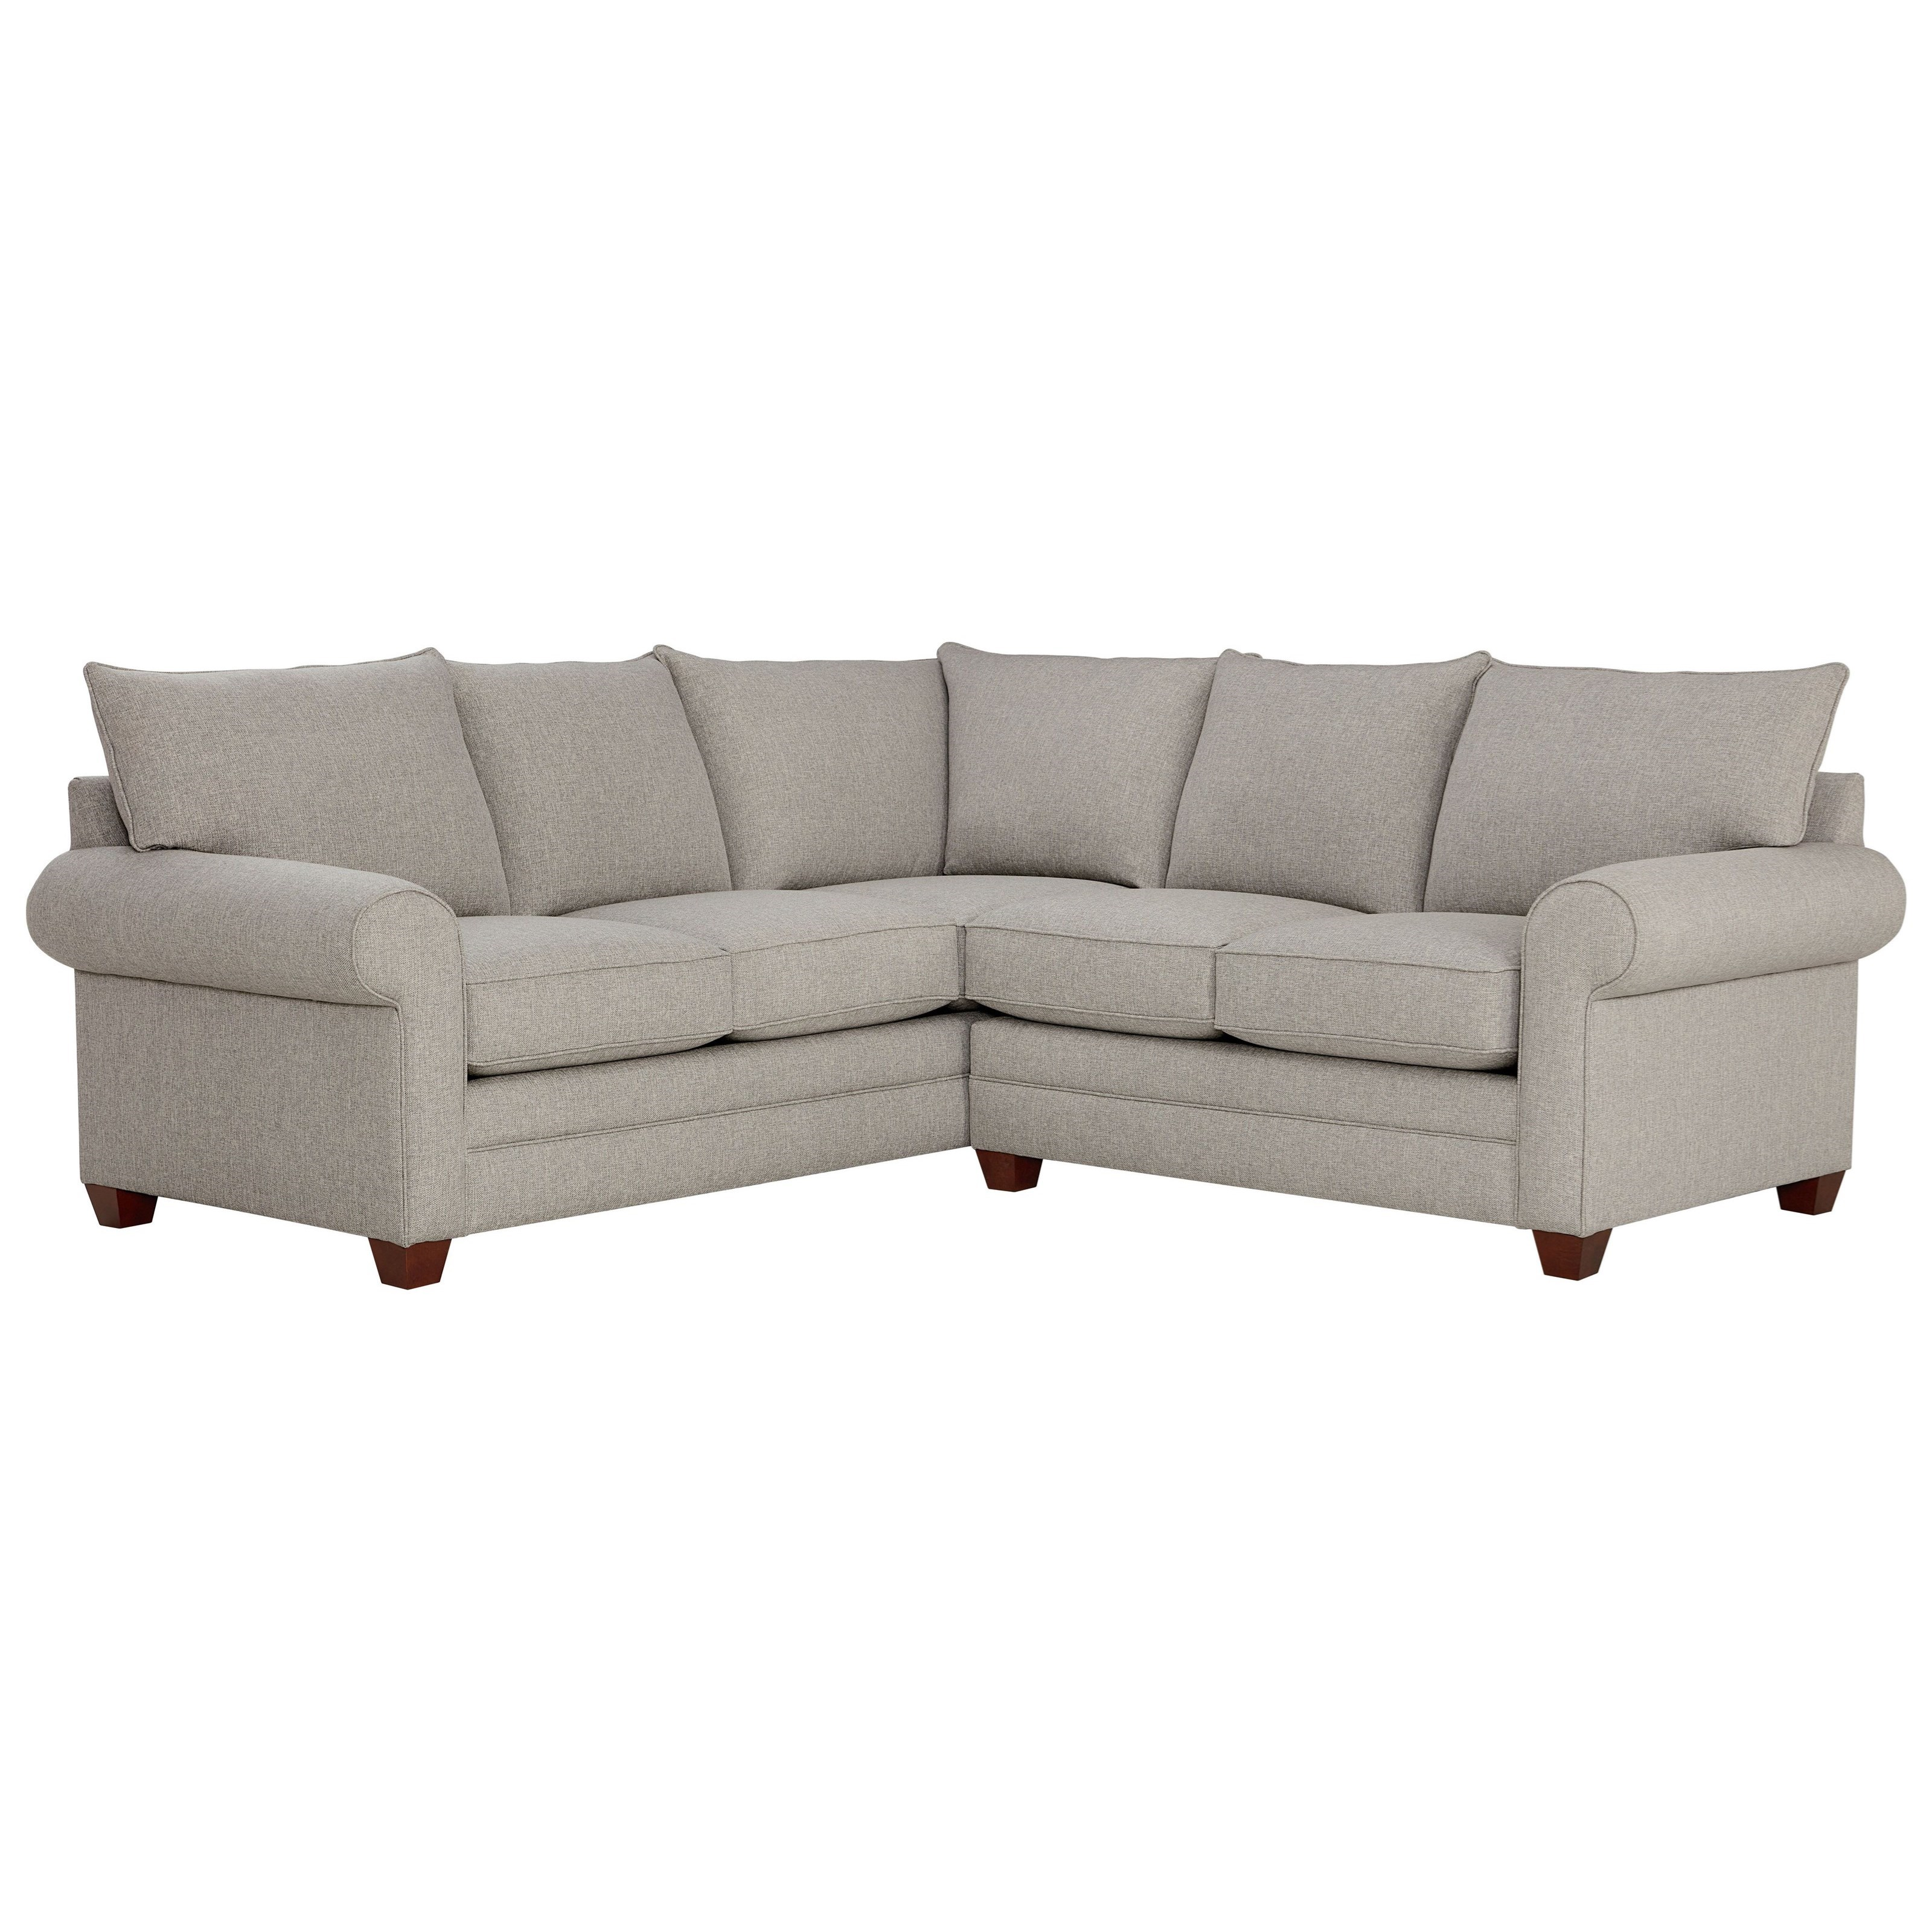 Alexander 2-Piece Sectional by Bassett at Suburban Furniture